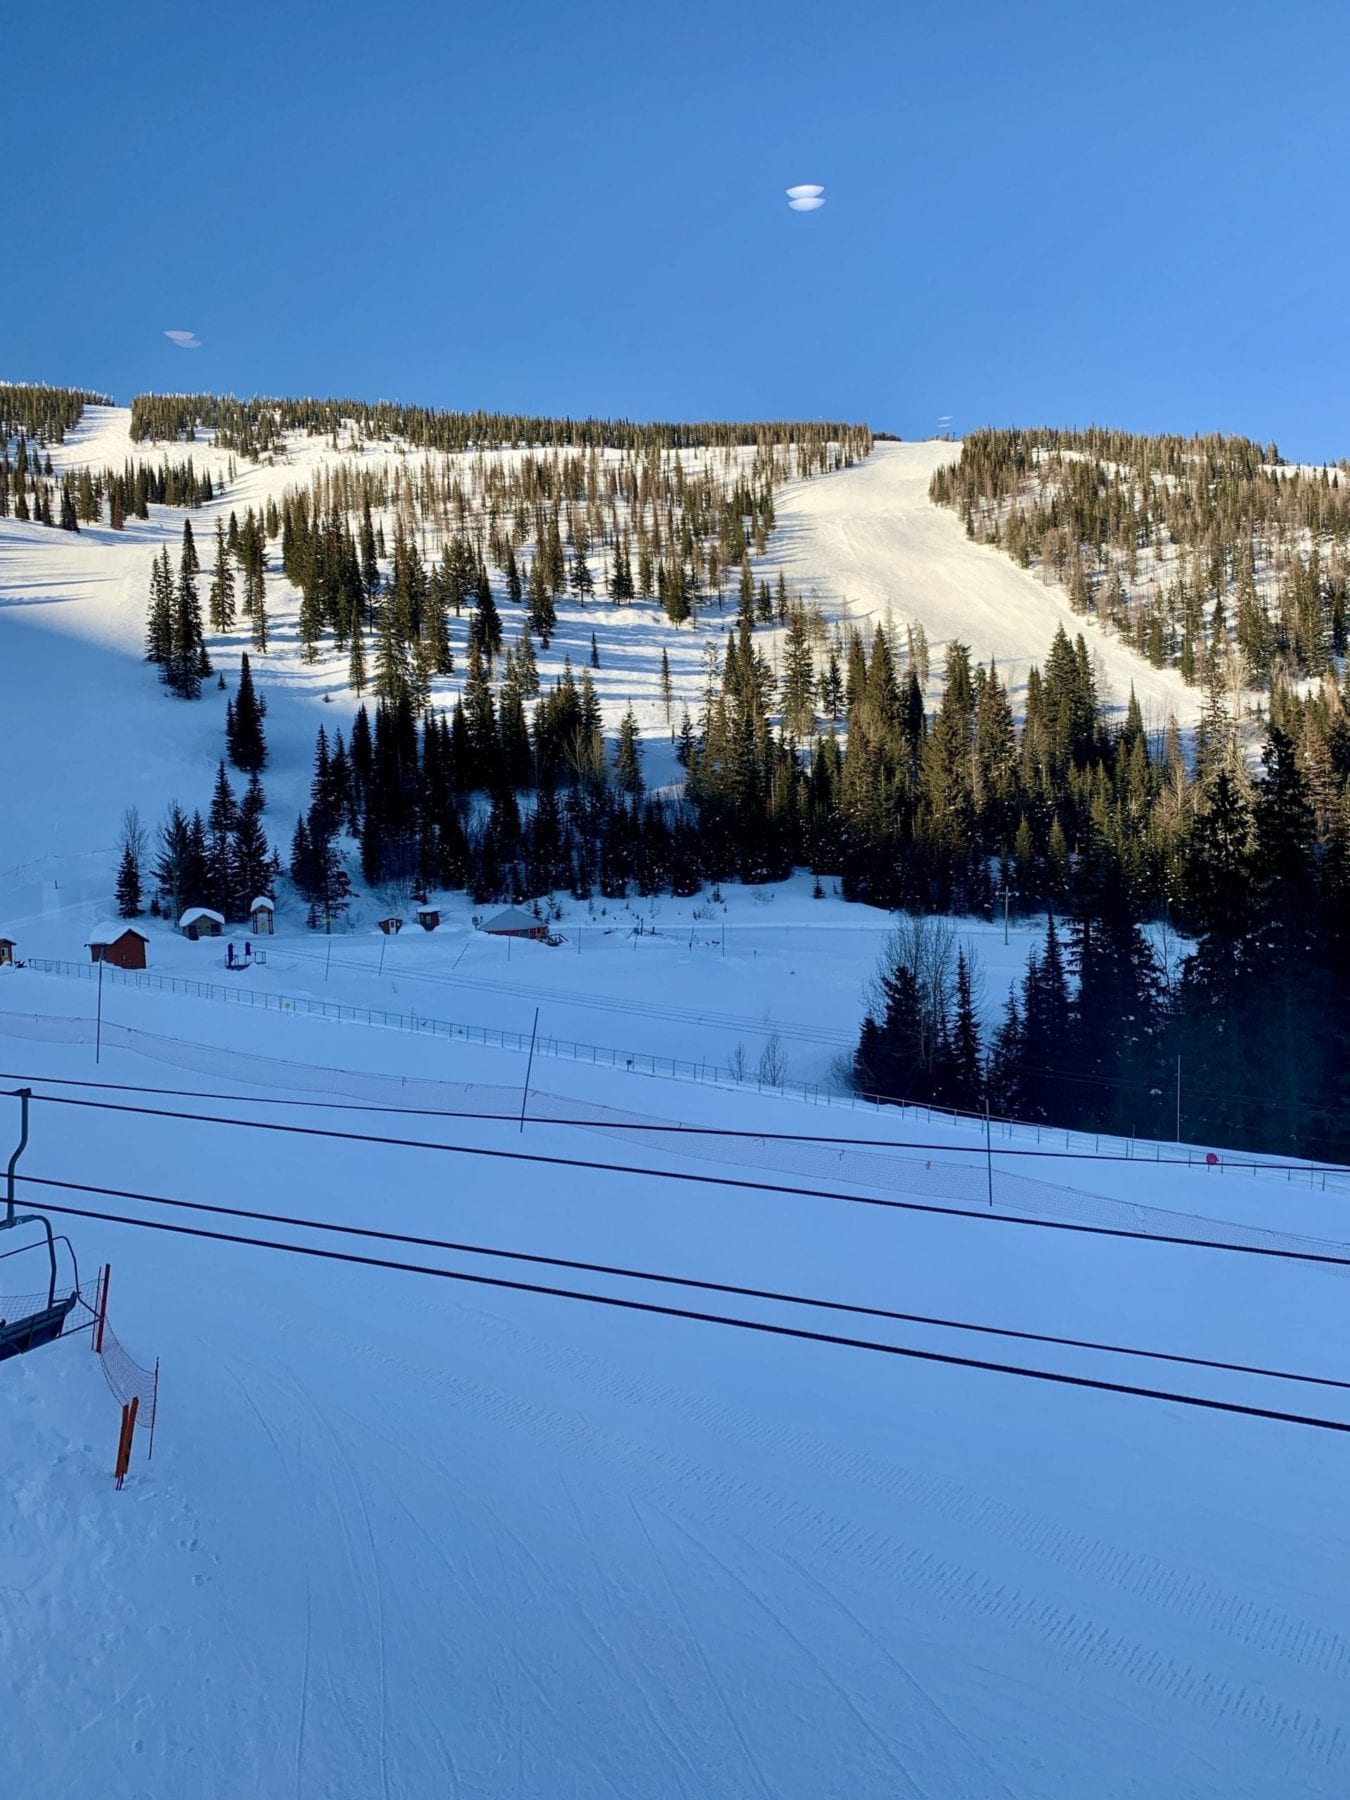 Schweitzer Mountain Resort in Idaho